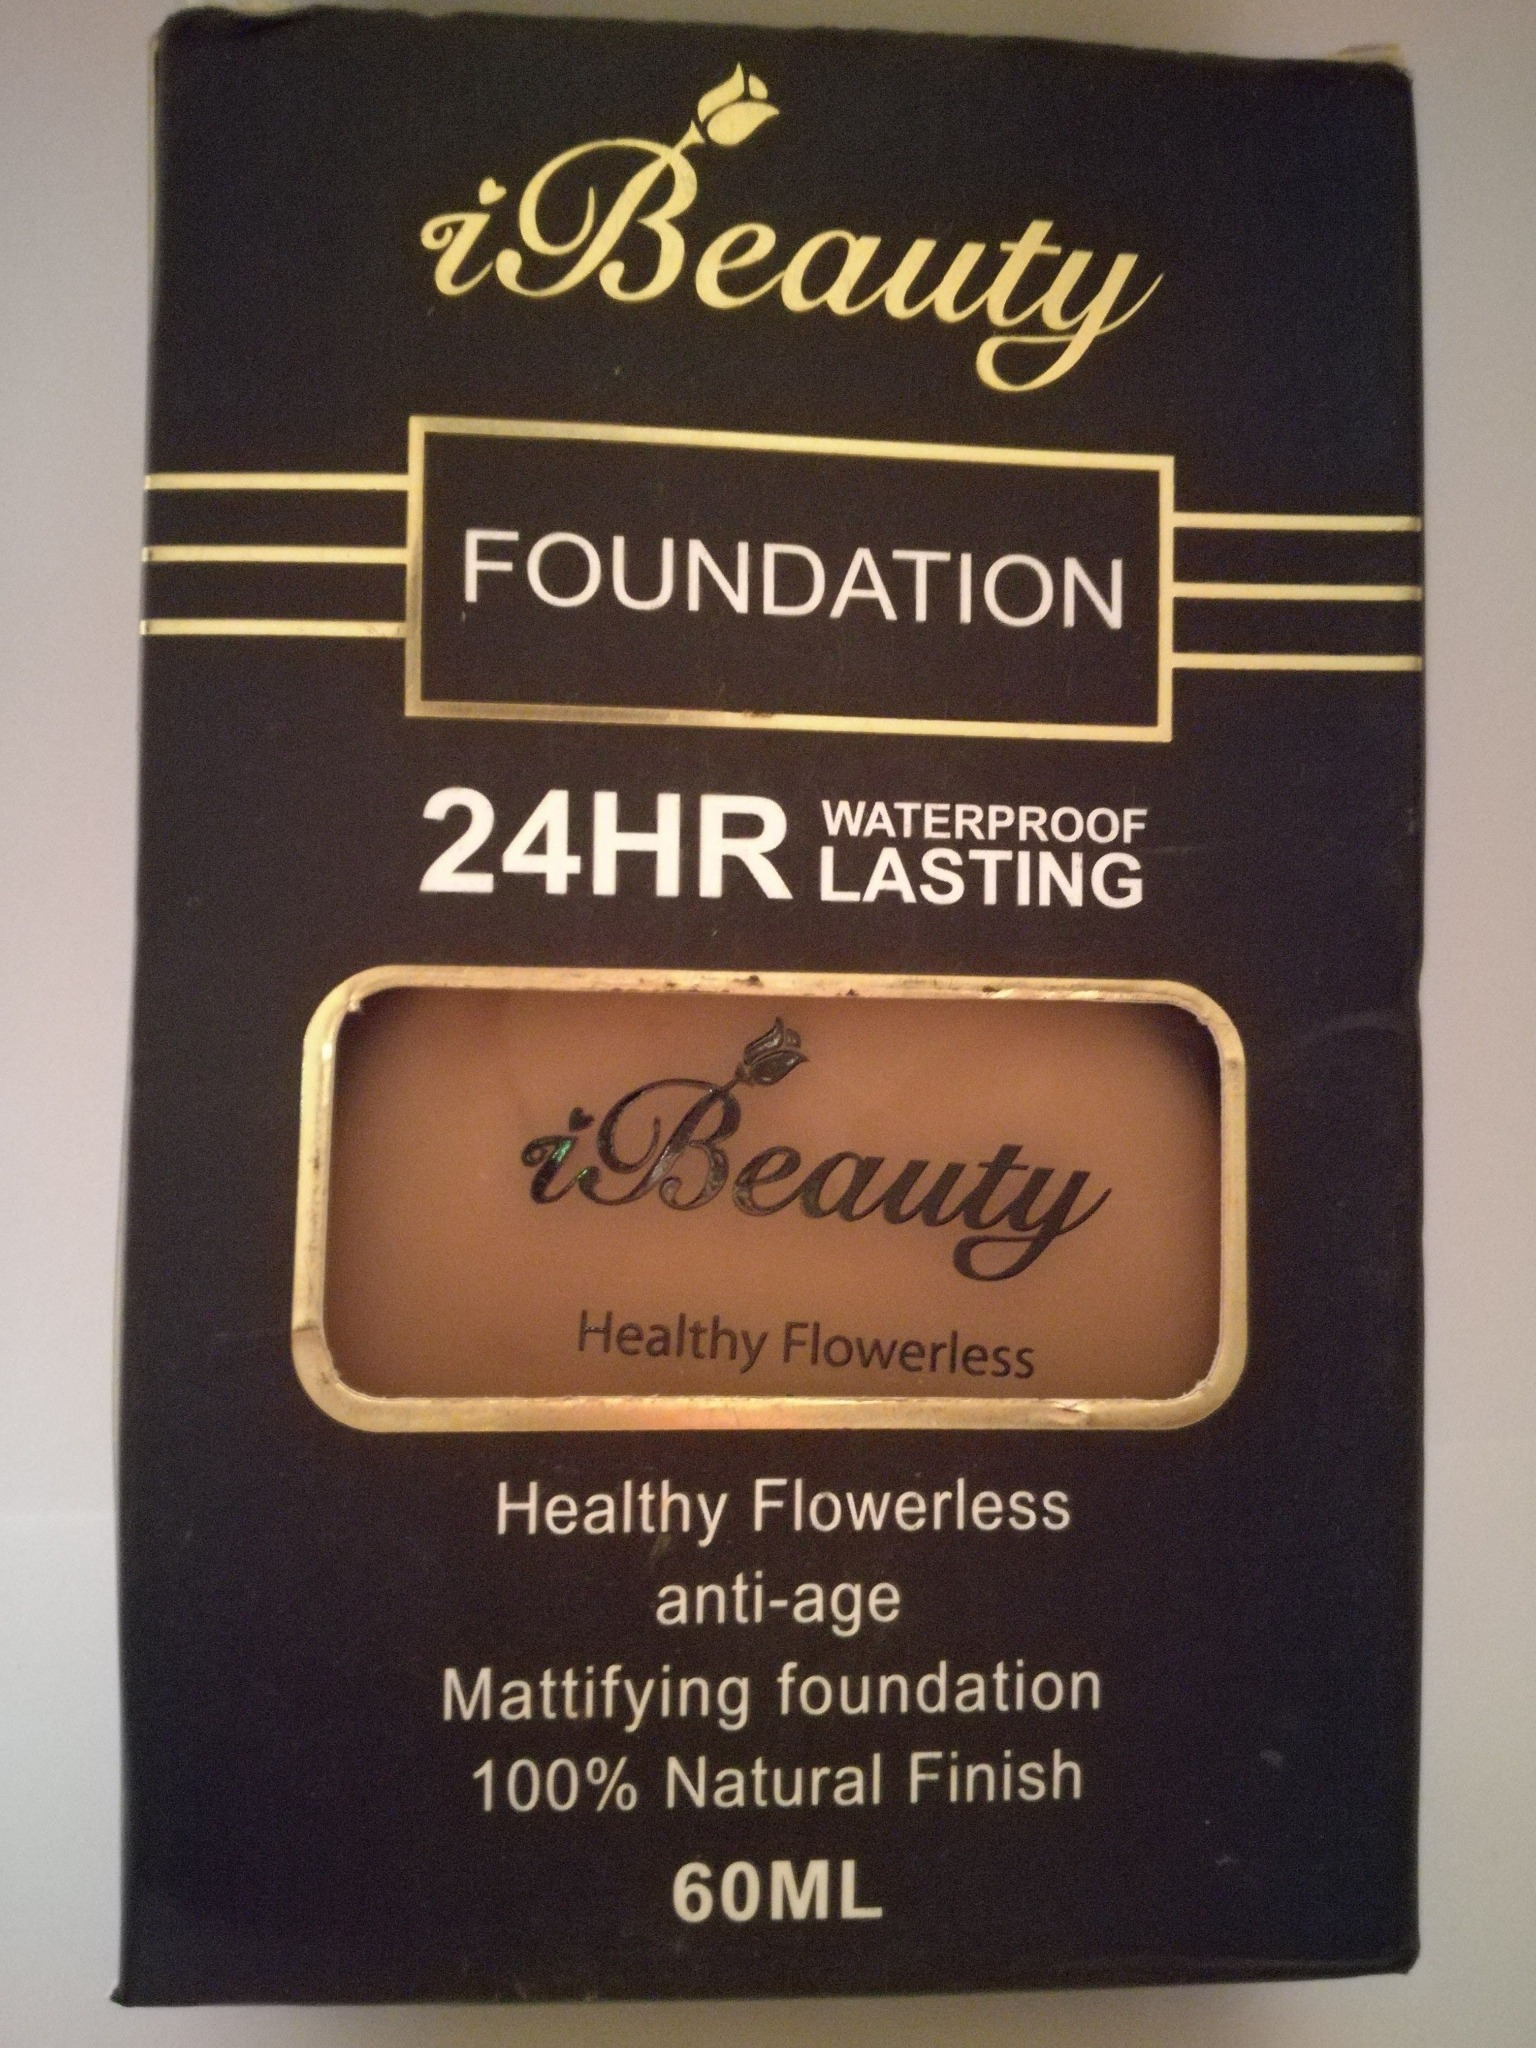 IBeauty Fondation 24 HR waterproof Lasting